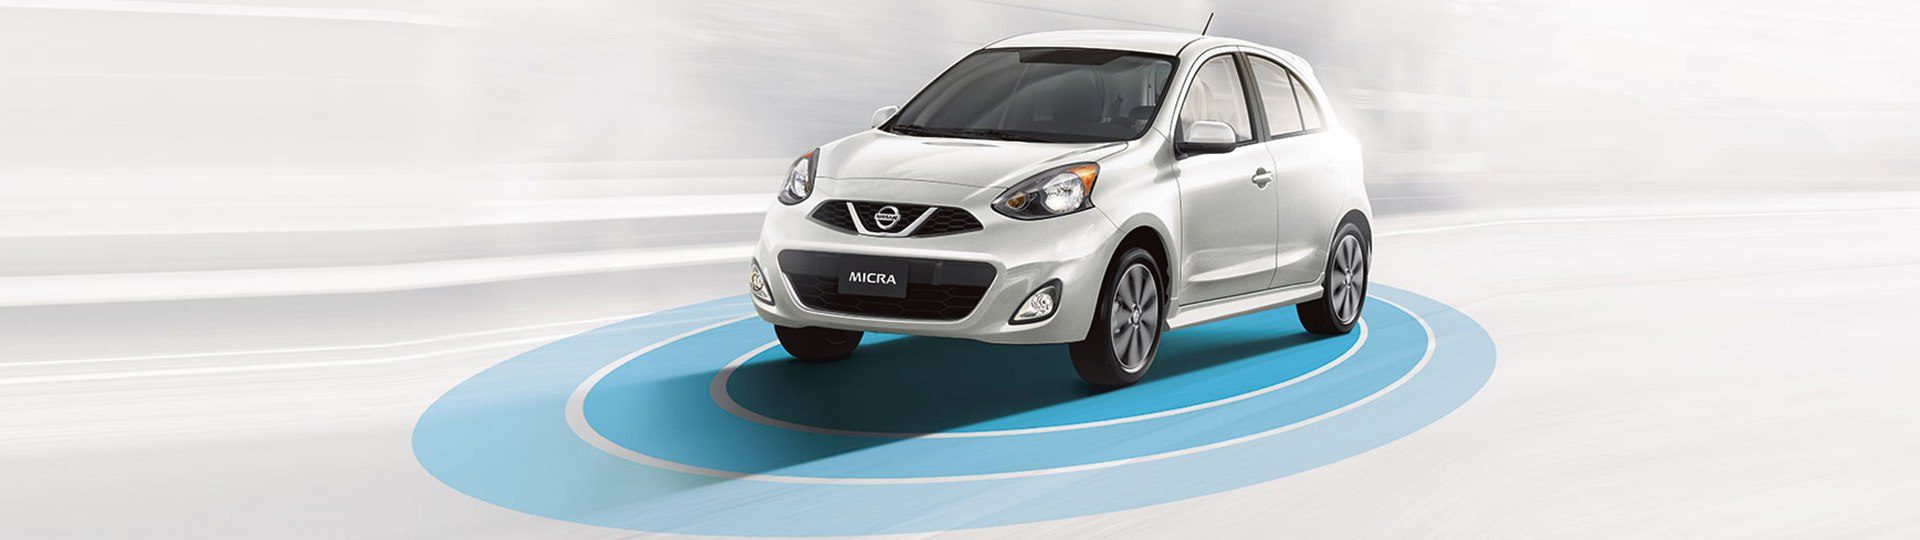 micra-safety